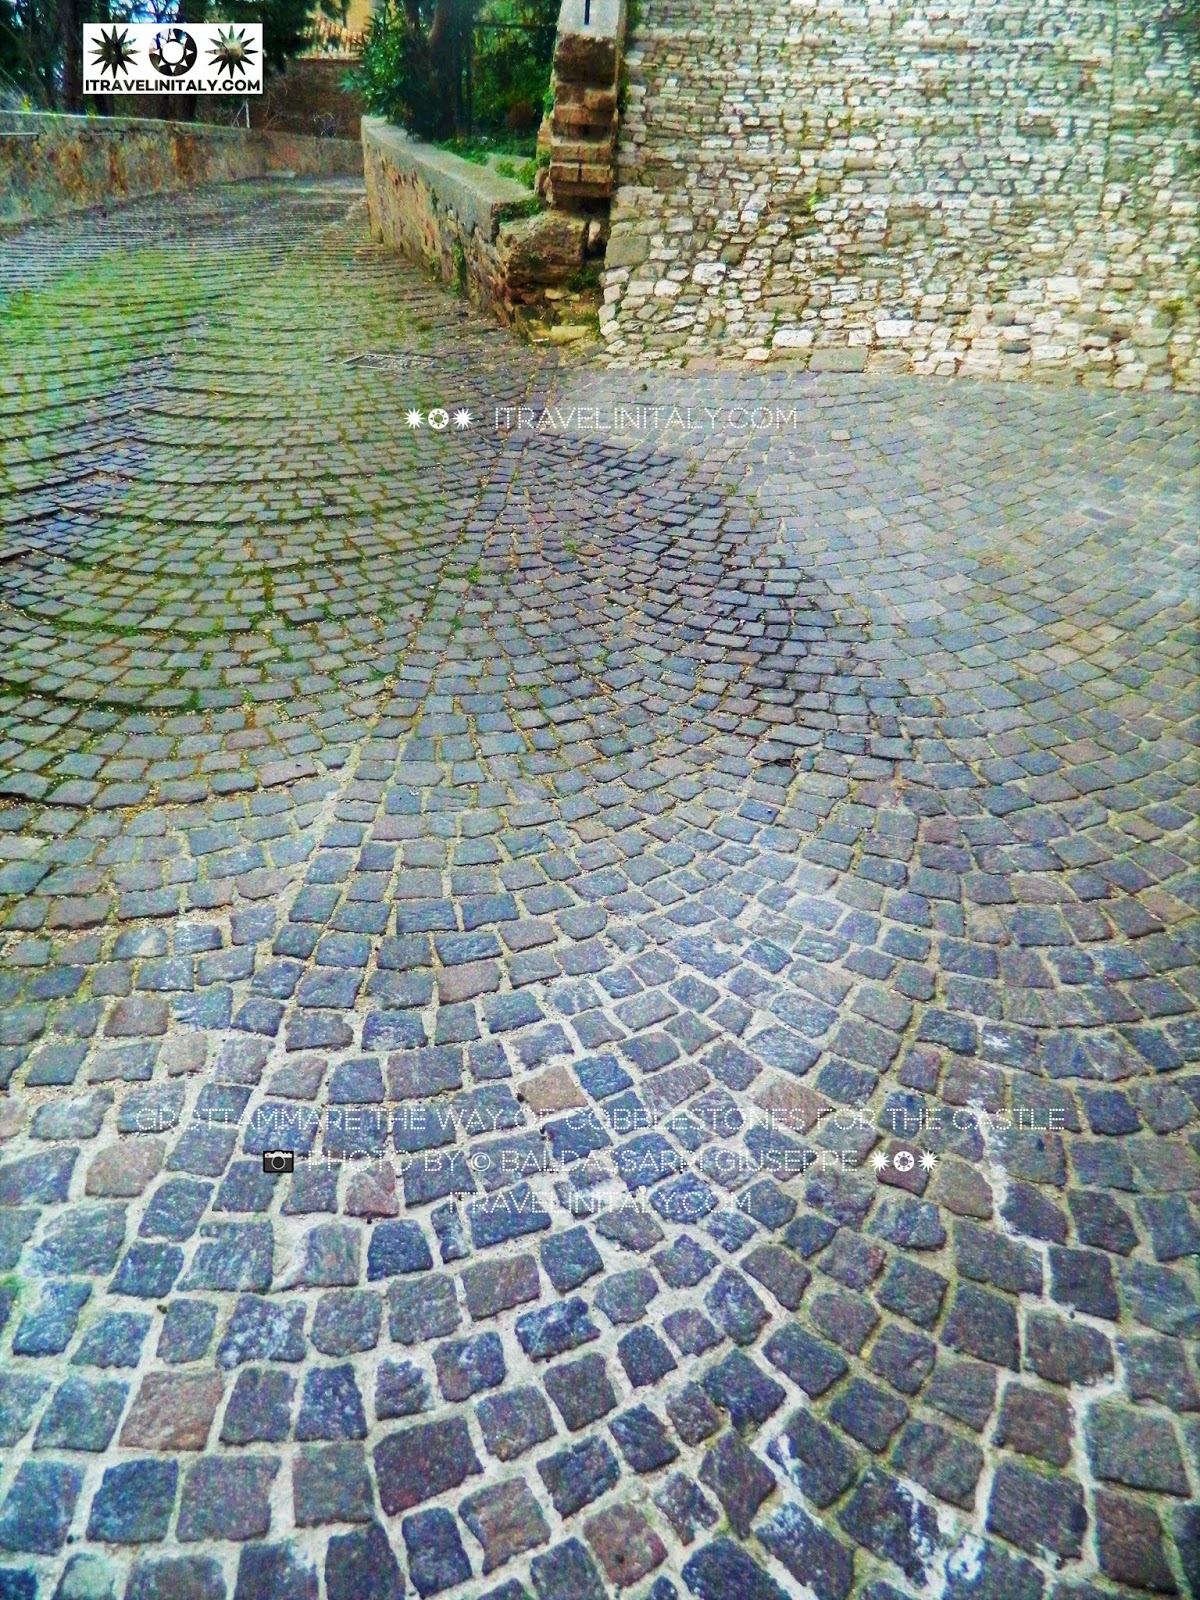 Grottammare the way of cobblestones for the Castle 📷 photo By © Baldassarri Giuseppe ✹❂✹ itravelinitaly.com Travel is the traveler in Italy